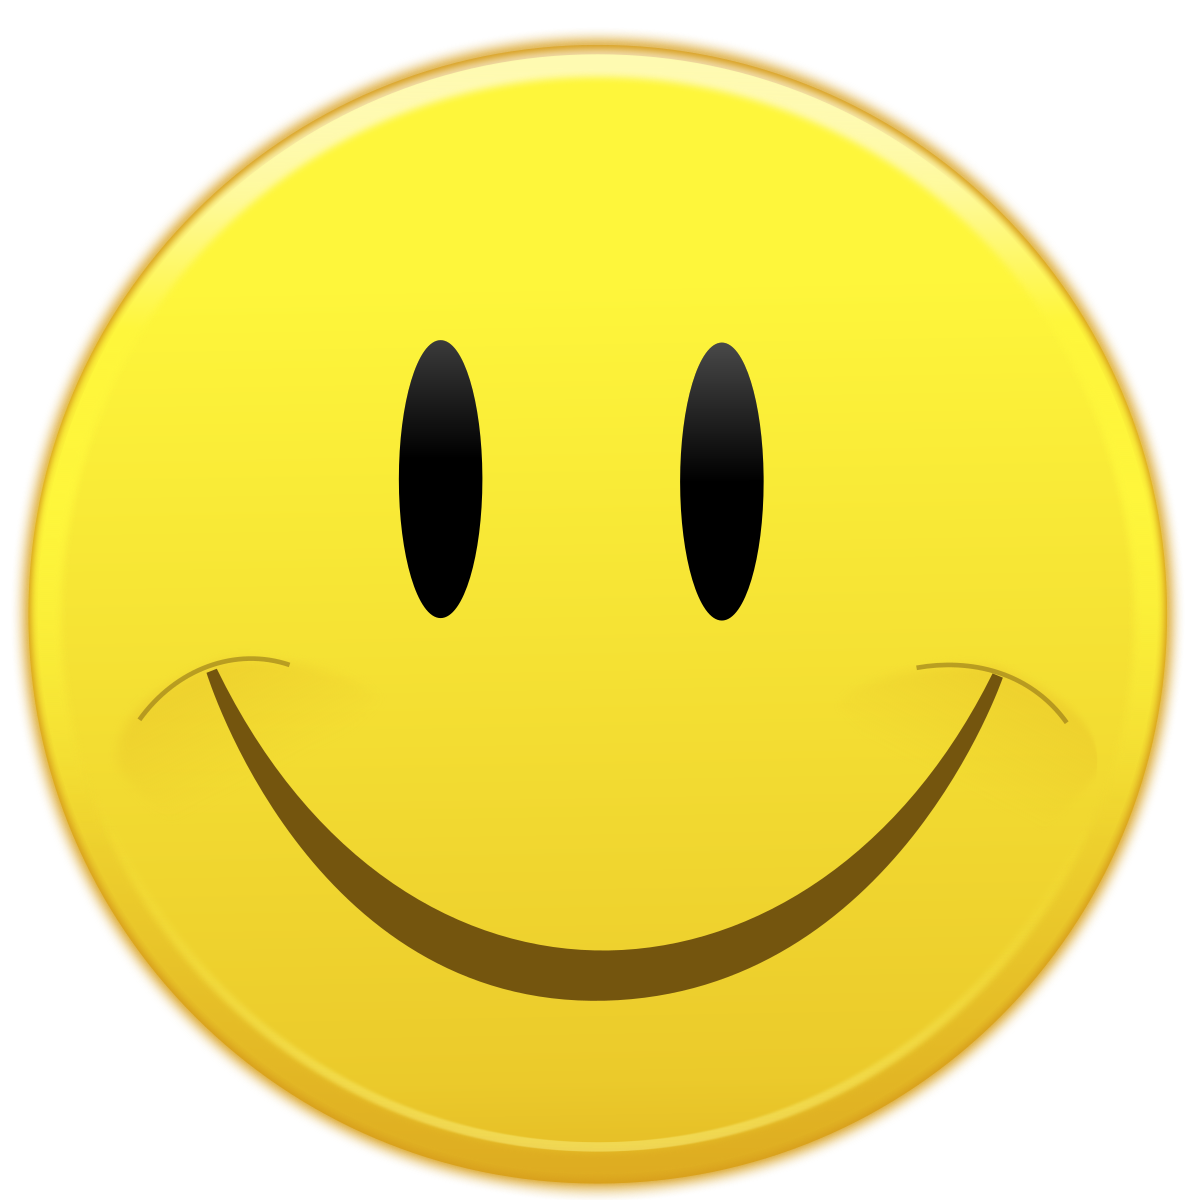 Smiley wikipedia . Positive clipart smile